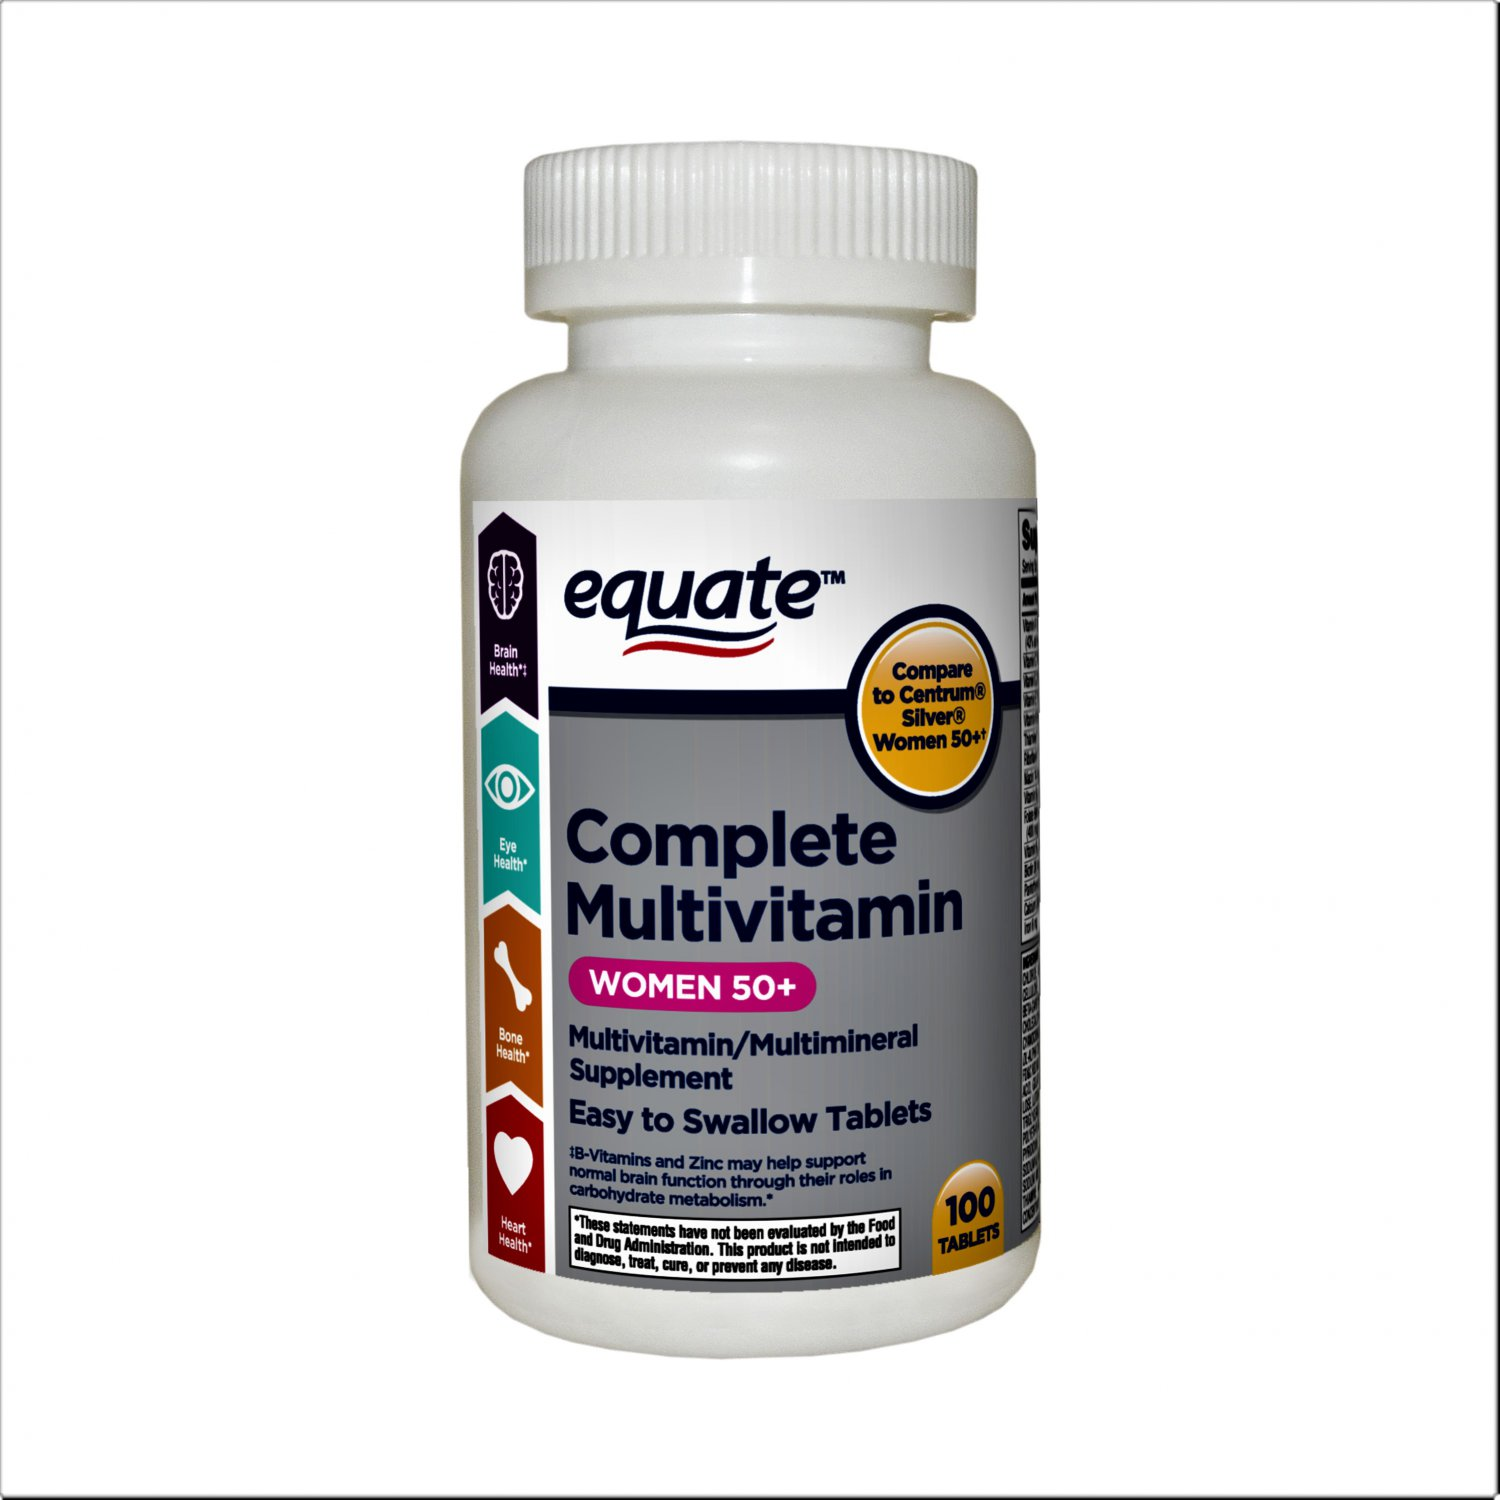 Equate Complete Multivitamin/Multimineral Women 50+ Dietary Supplement 100 Tablets